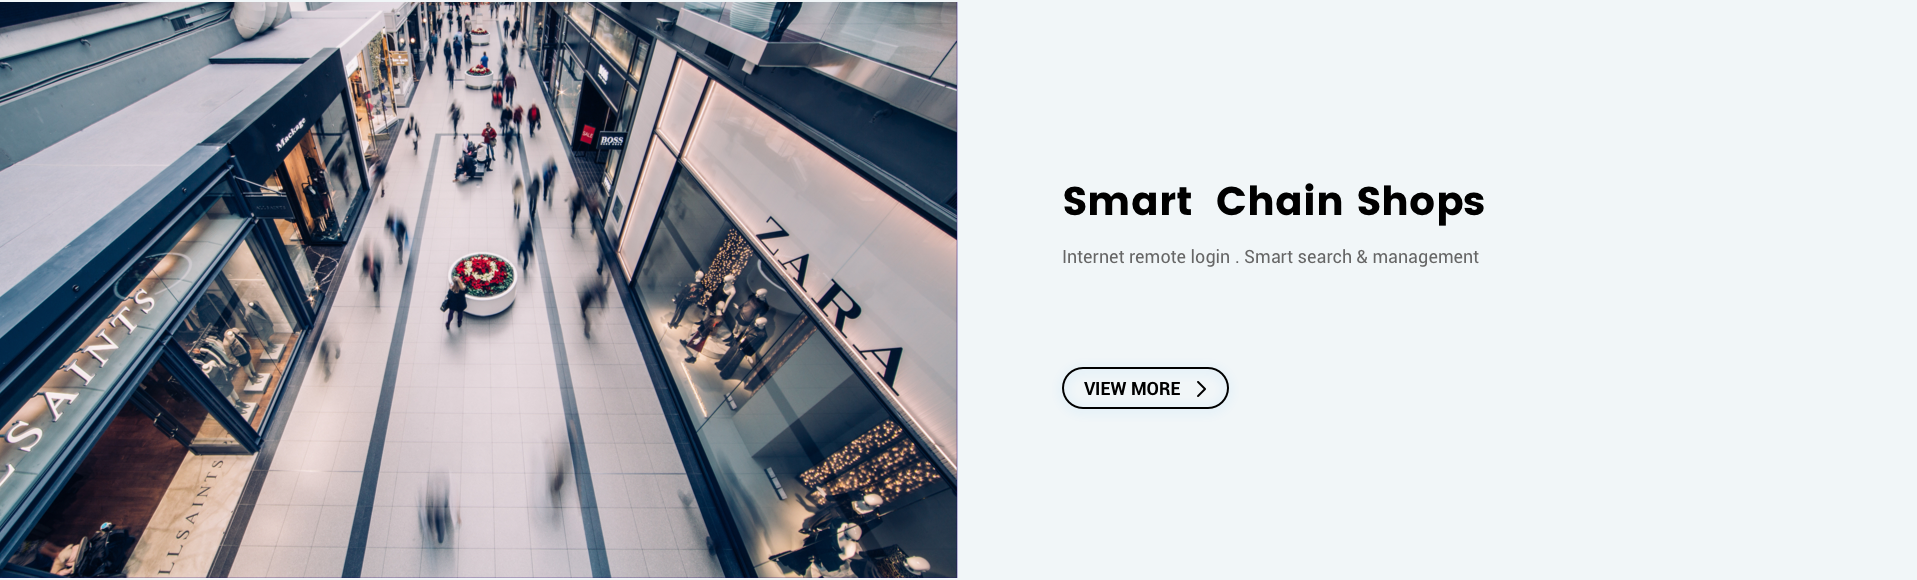 Smart Chain Shops Solution